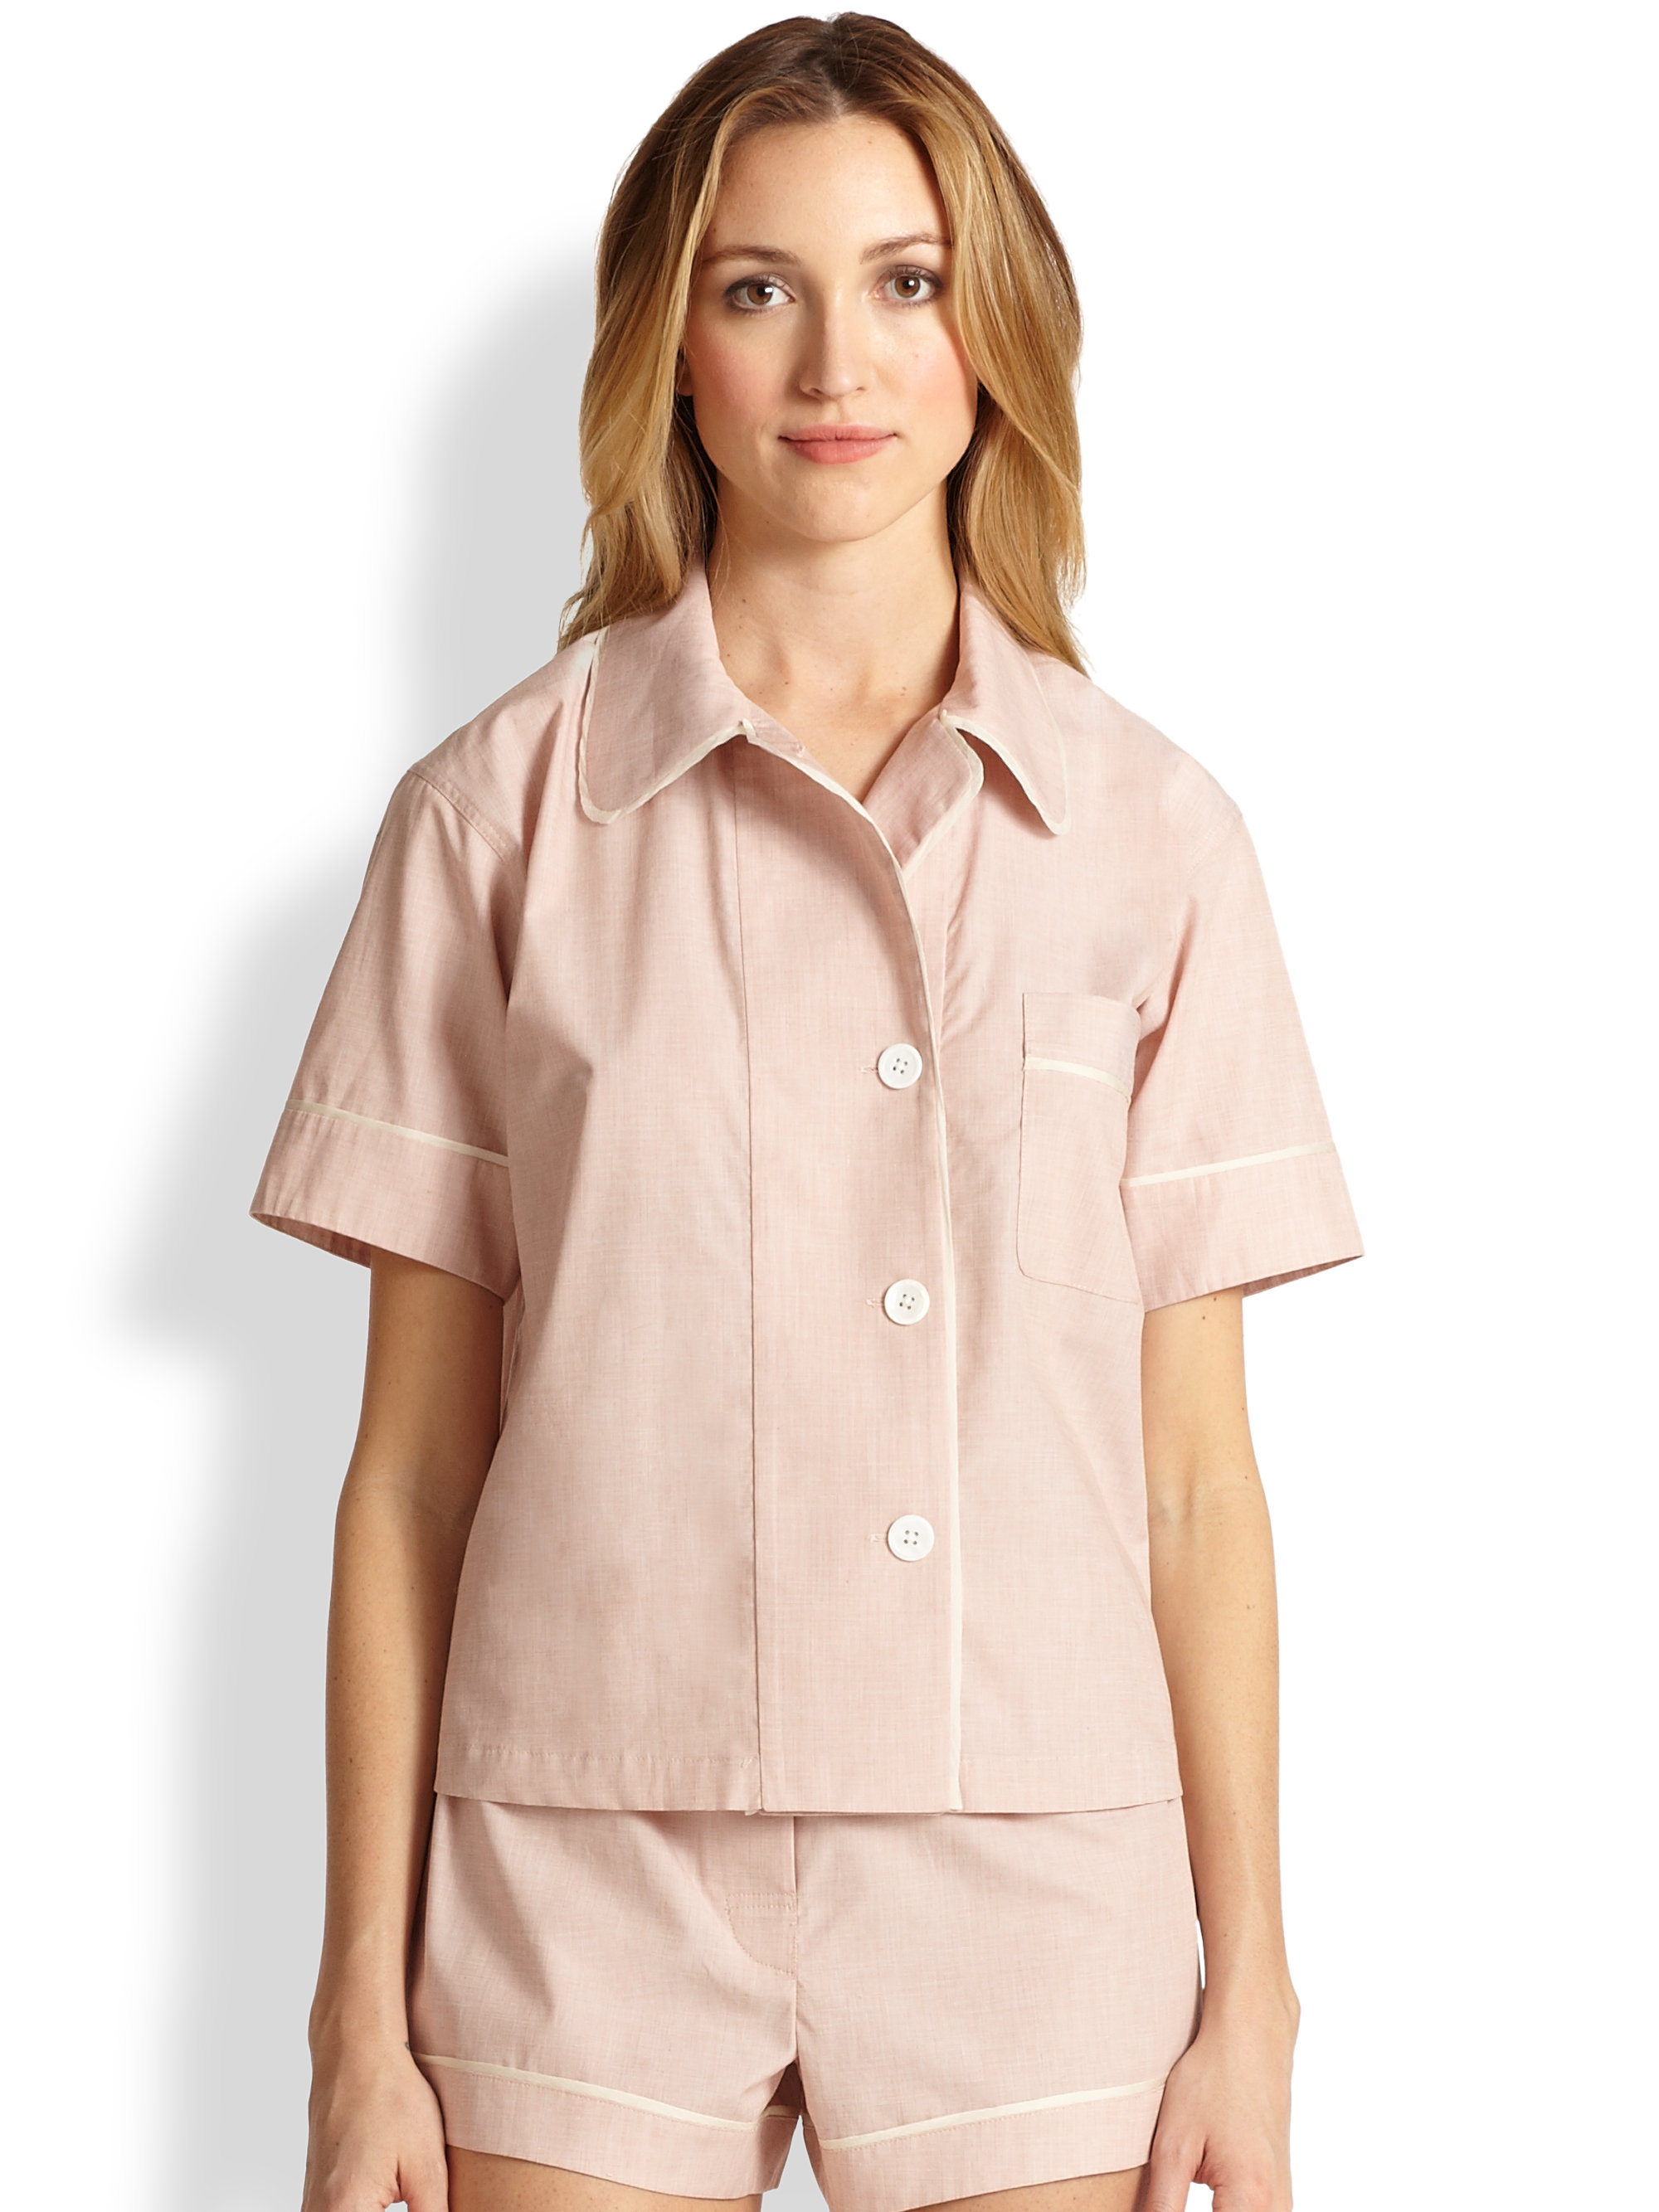 Lyst - Araks Shelby Pajama Top in Pink ee0f53a4d